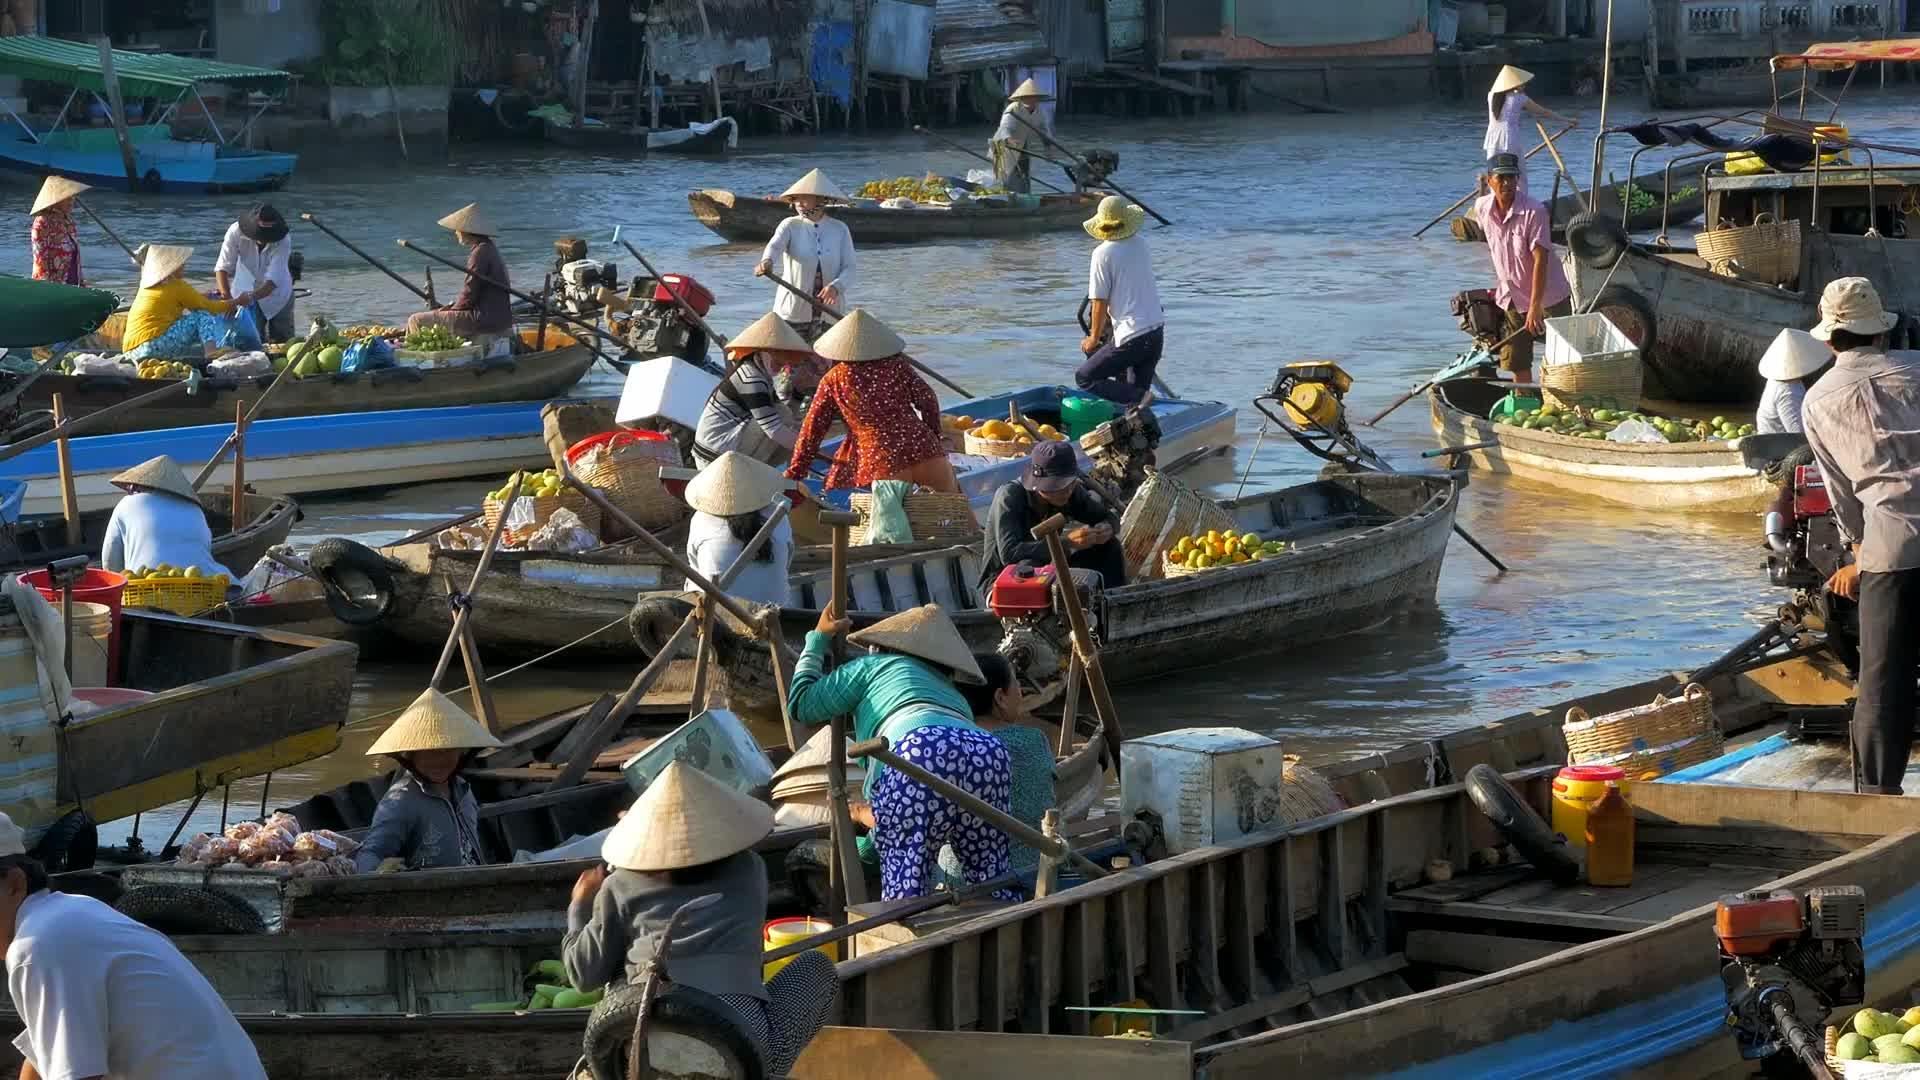 Mekong Delta travel | Vietnam - Lonely Planet